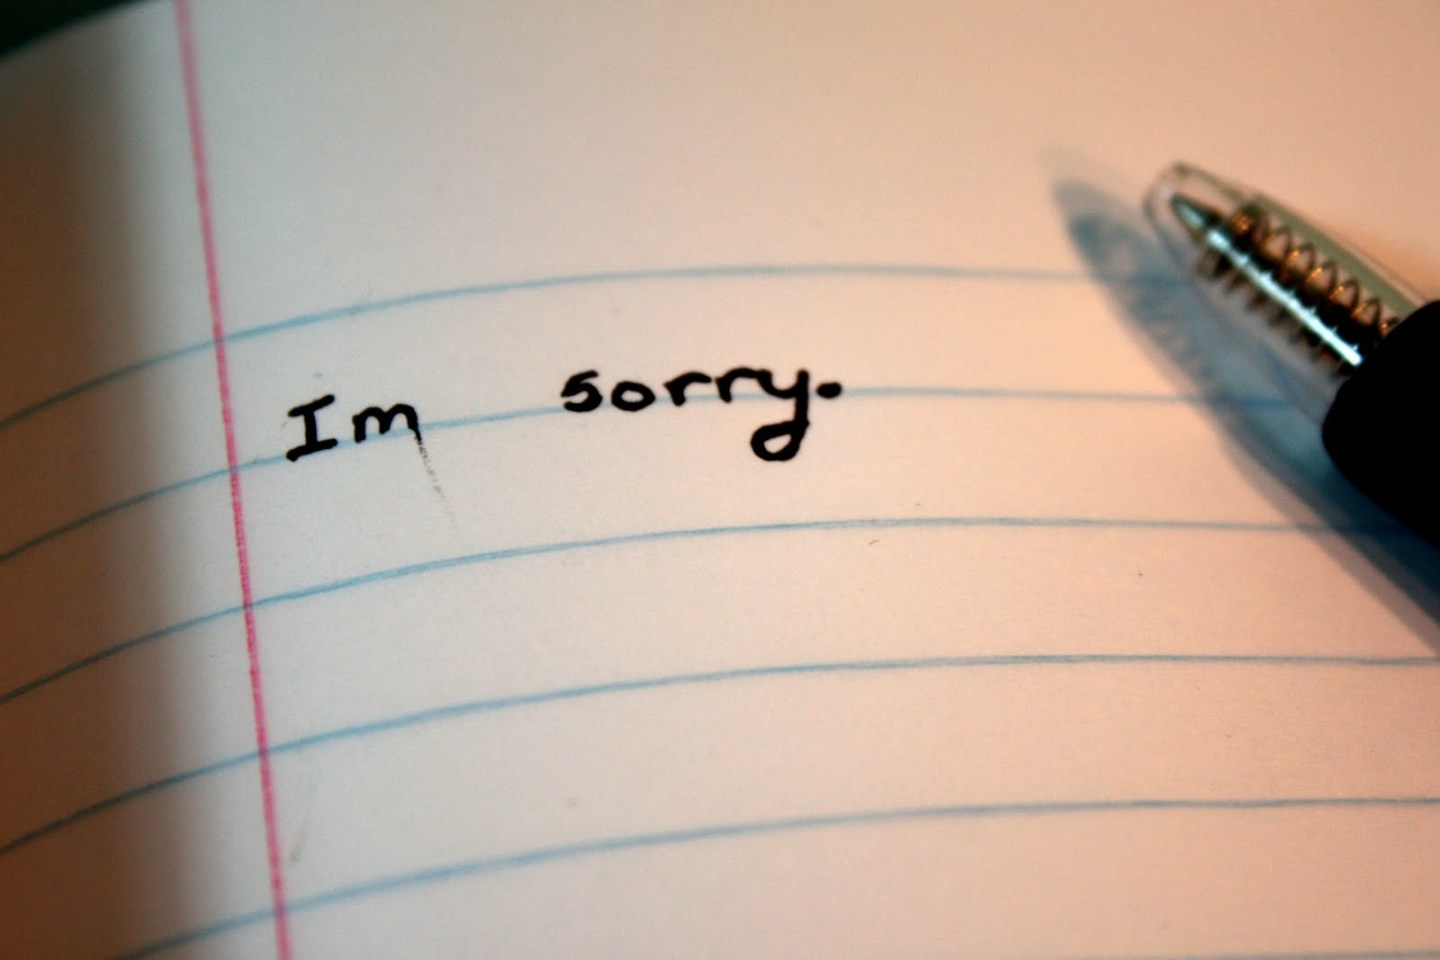 Don't Just SAY You're Sorry - Prove It